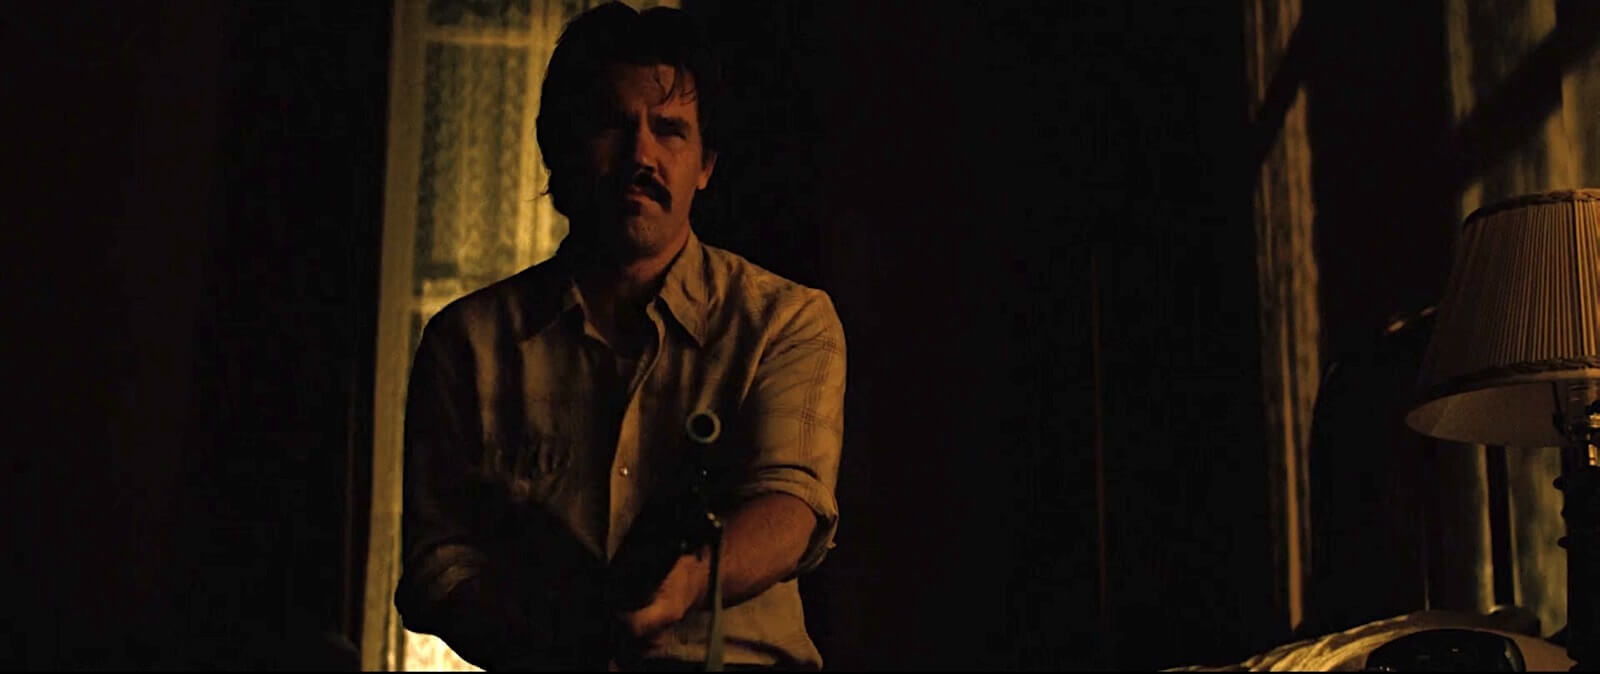 Screenwriting Tips and Strategies from Coen Brothers - No Country for Old Men